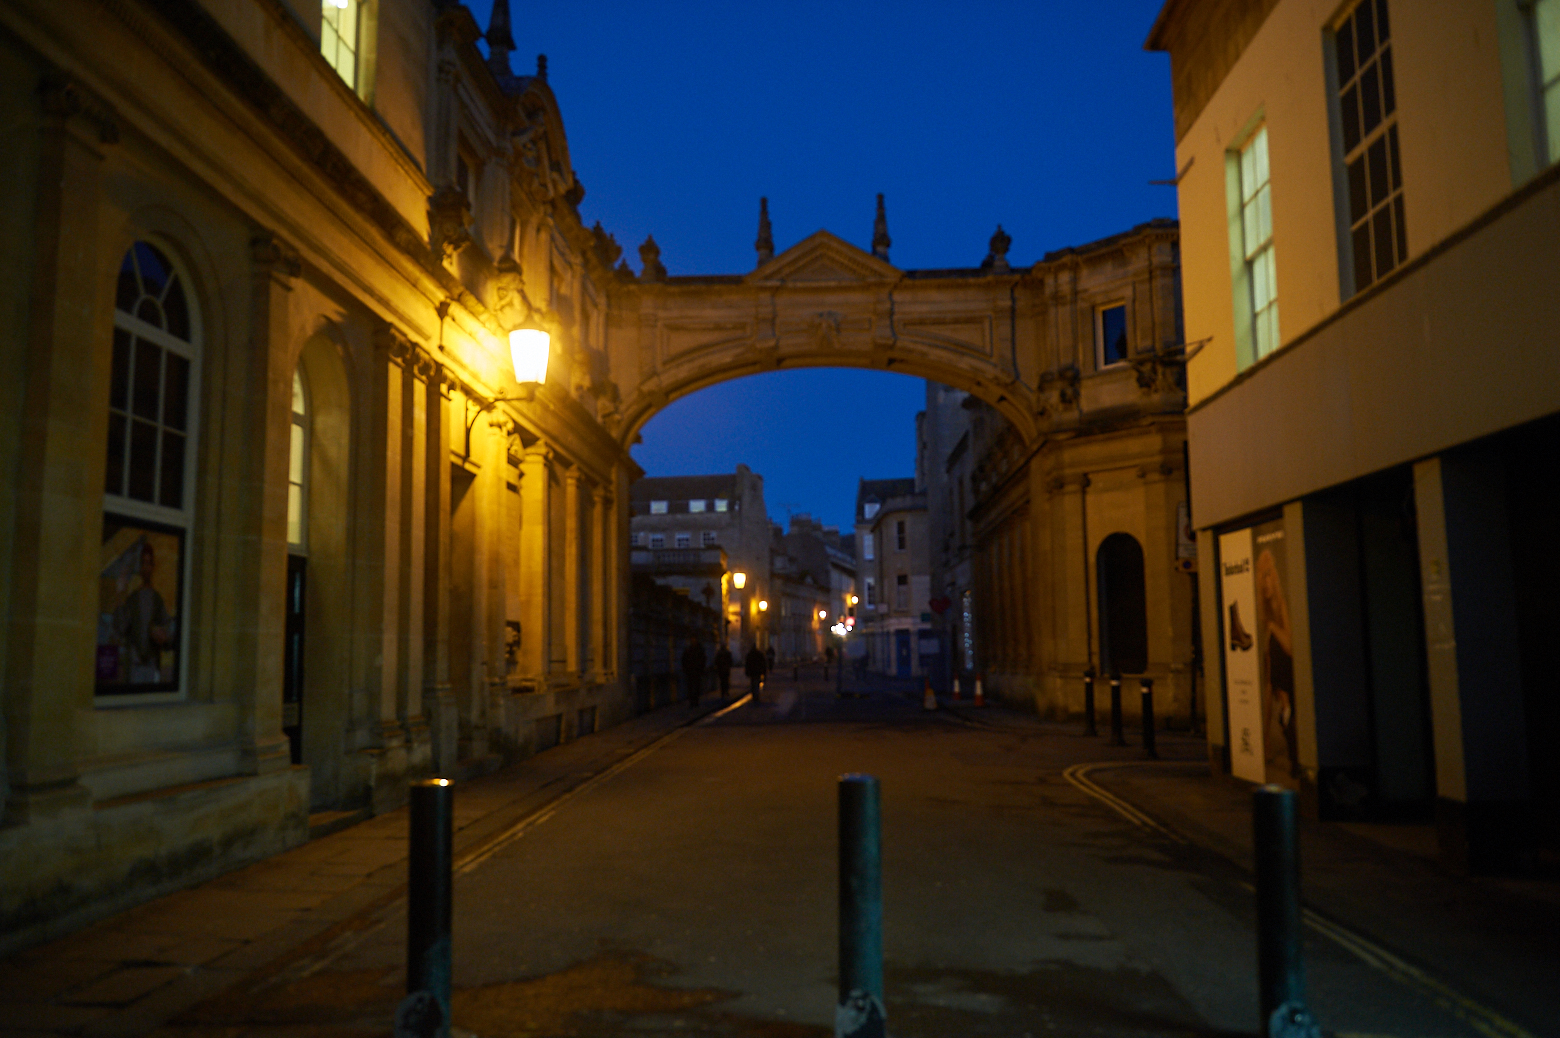 bath, somerset, england, jane austen, town, uk, photos and the city, ursula travels, sunset, roman bath